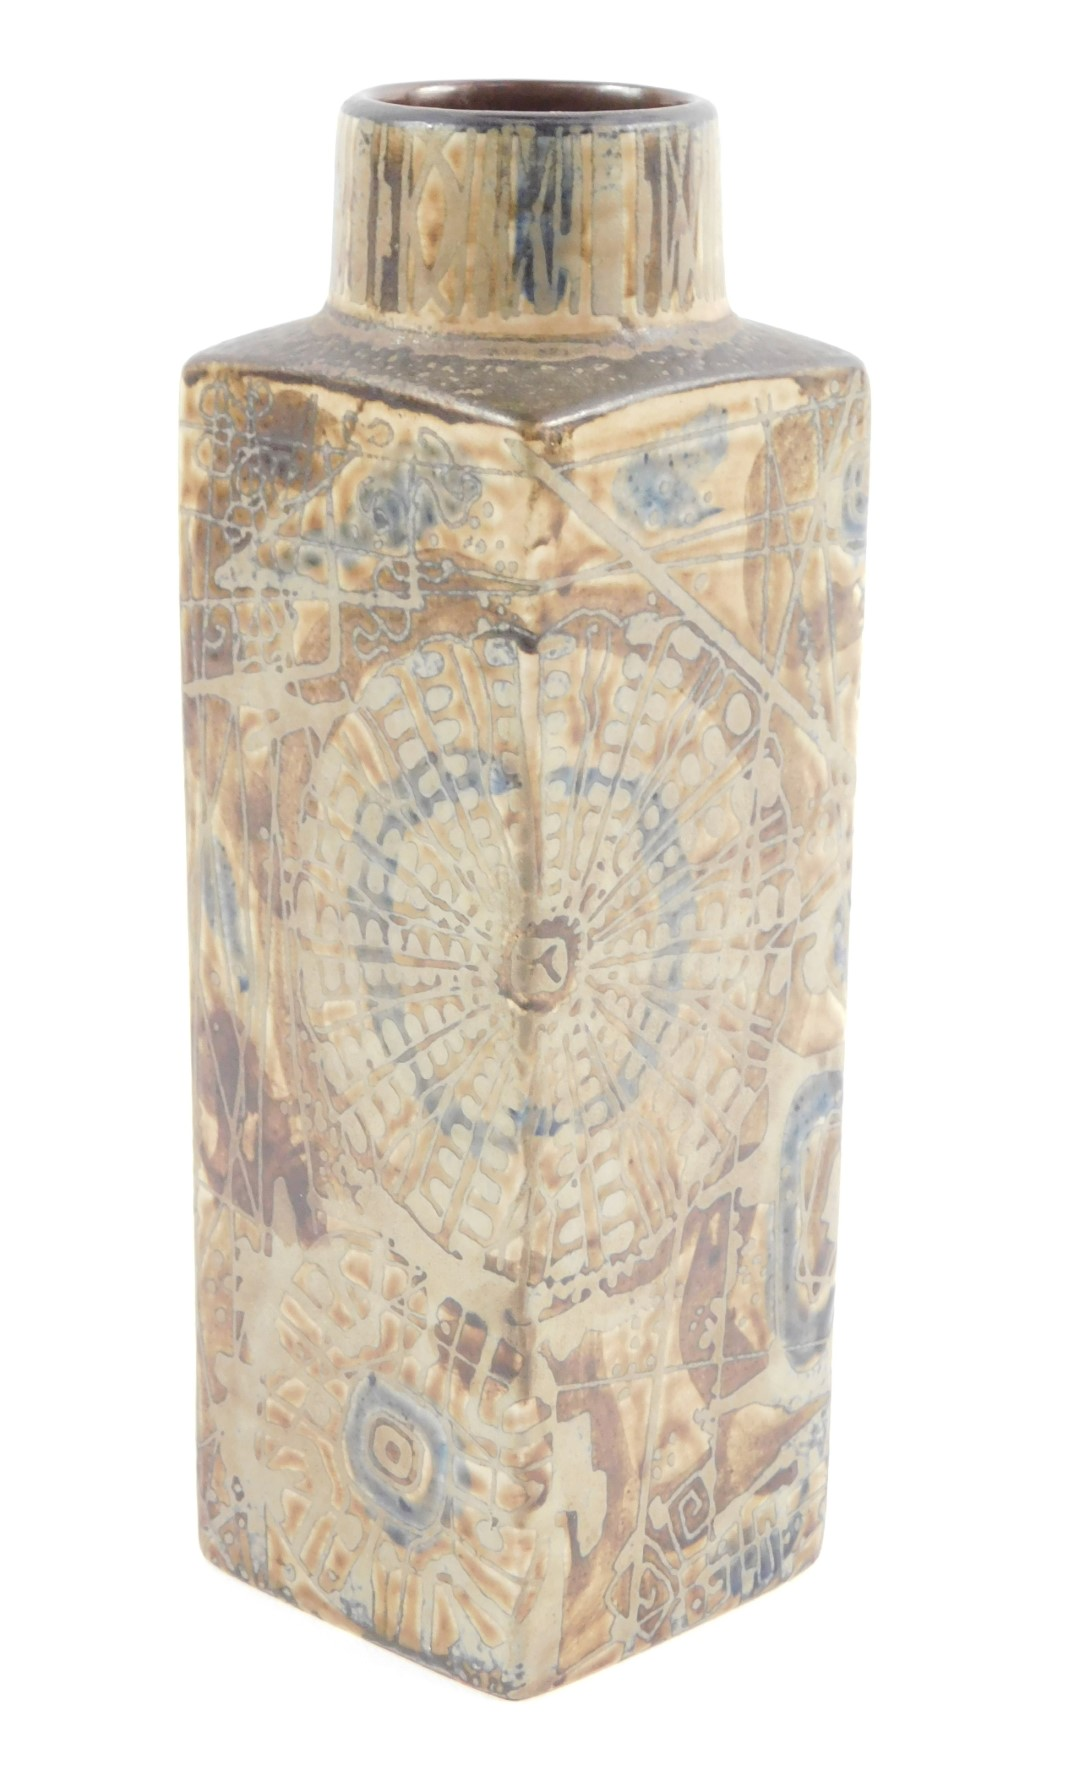 Lot 5 - A Royal Copenhagen Fajance Baca Series vase, designed by Nils Thorsson, of rectangular form,